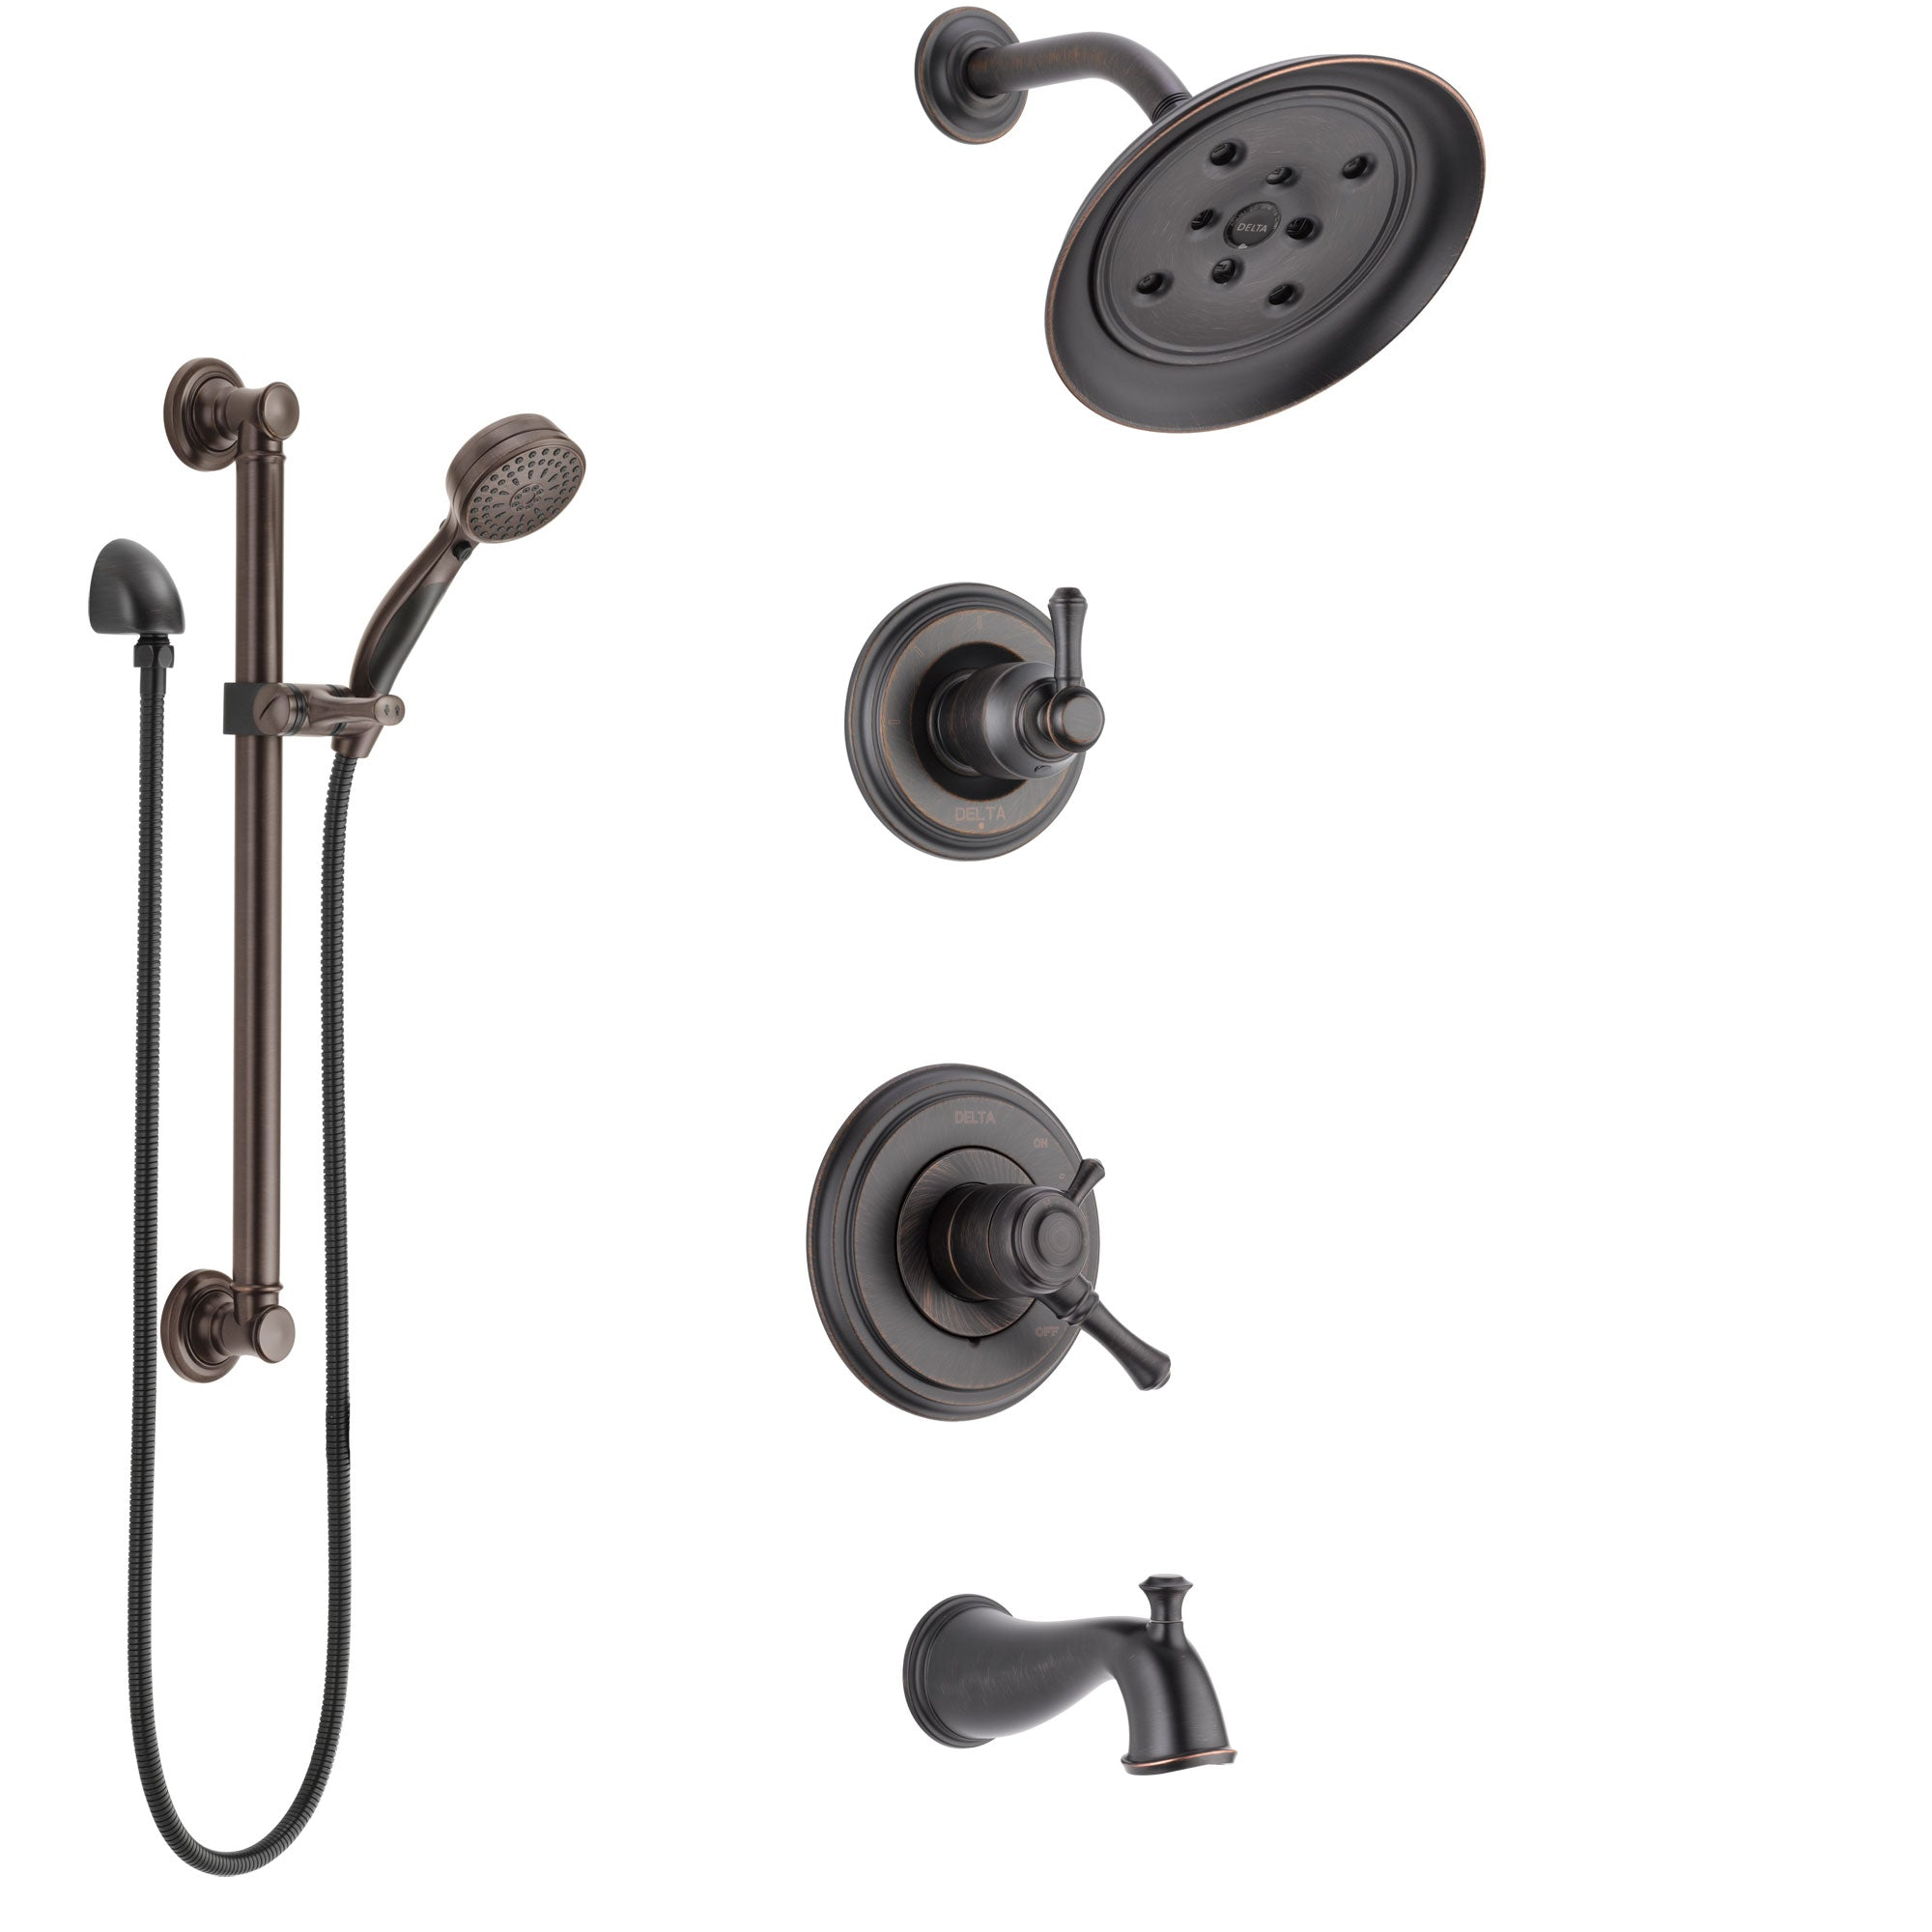 Delta Cassidy Venetian Bronze Tub and Shower System with Dual Control Handle, 3-Setting Diverter, Showerhead, and Hand Shower with Grab Bar SS17497RB3